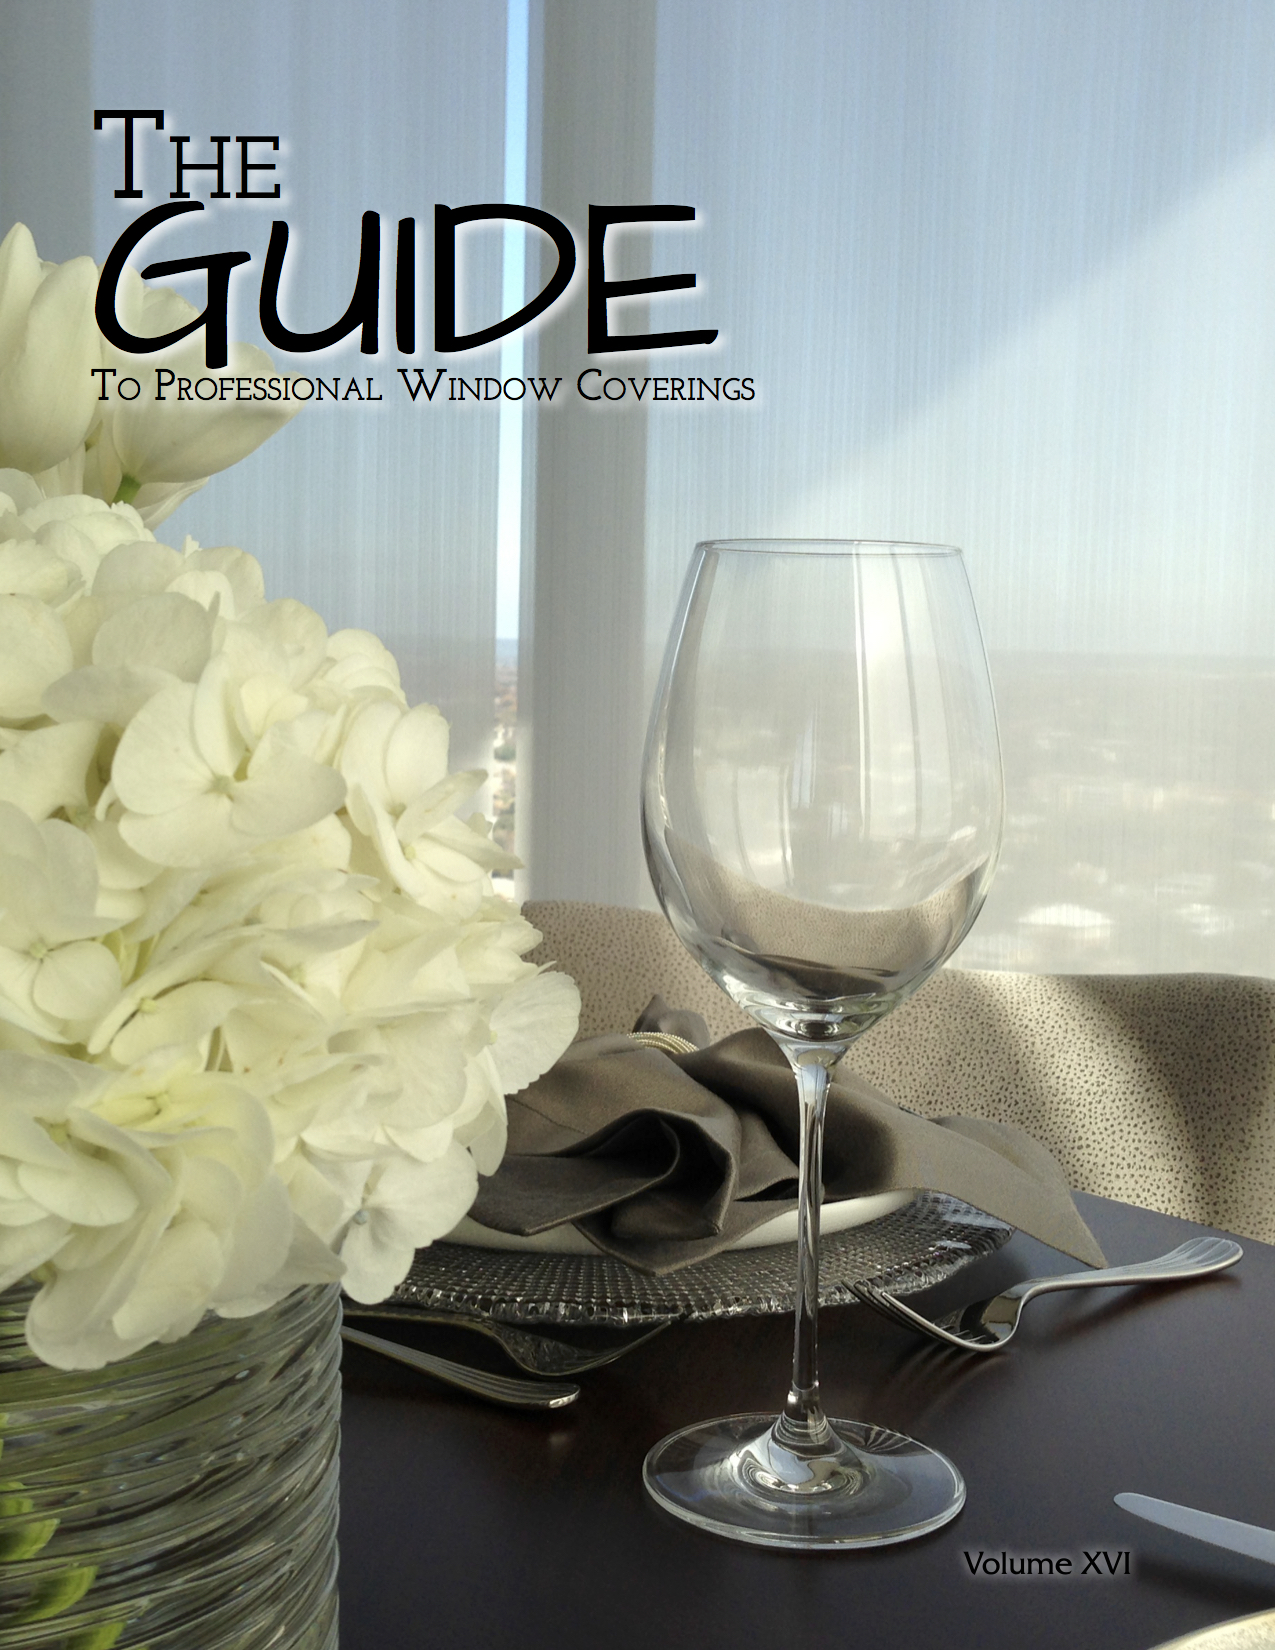 the guide to professional window coverings (1).jpg